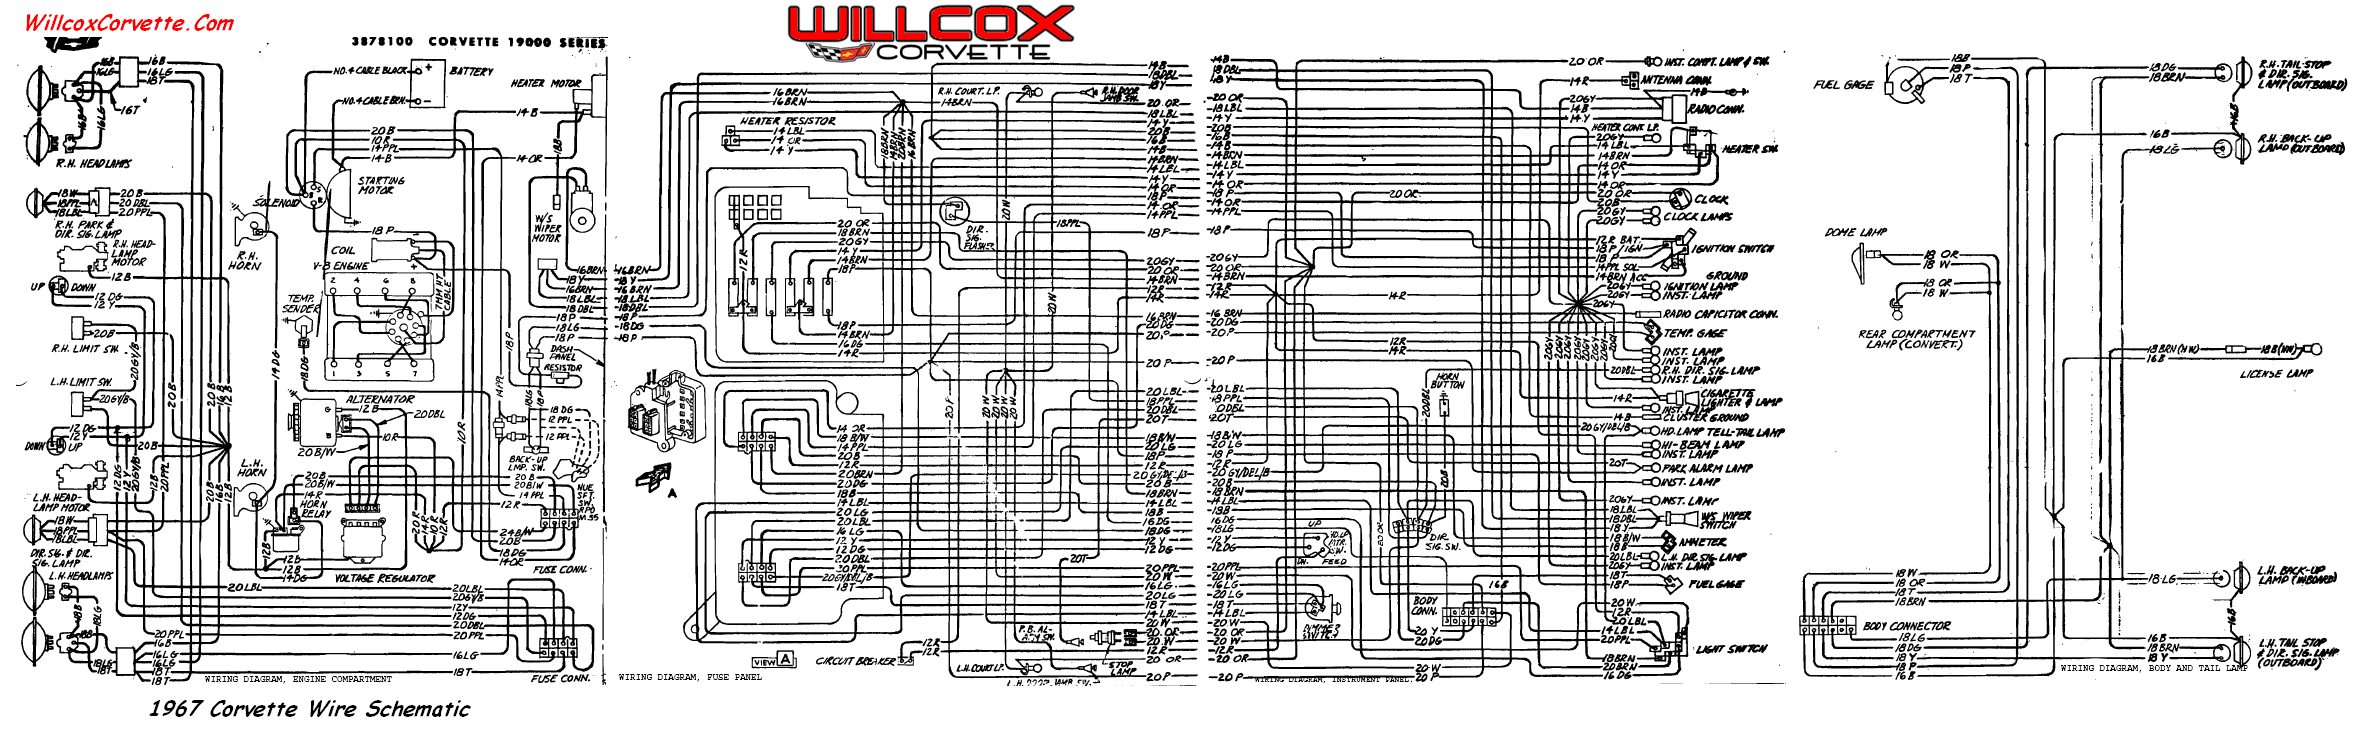 67 wire schematic for tracing wires 1967 corvette wiring diagram (tracer schematic) willcox corvette c3 corvette wiring diagram at crackthecode.co